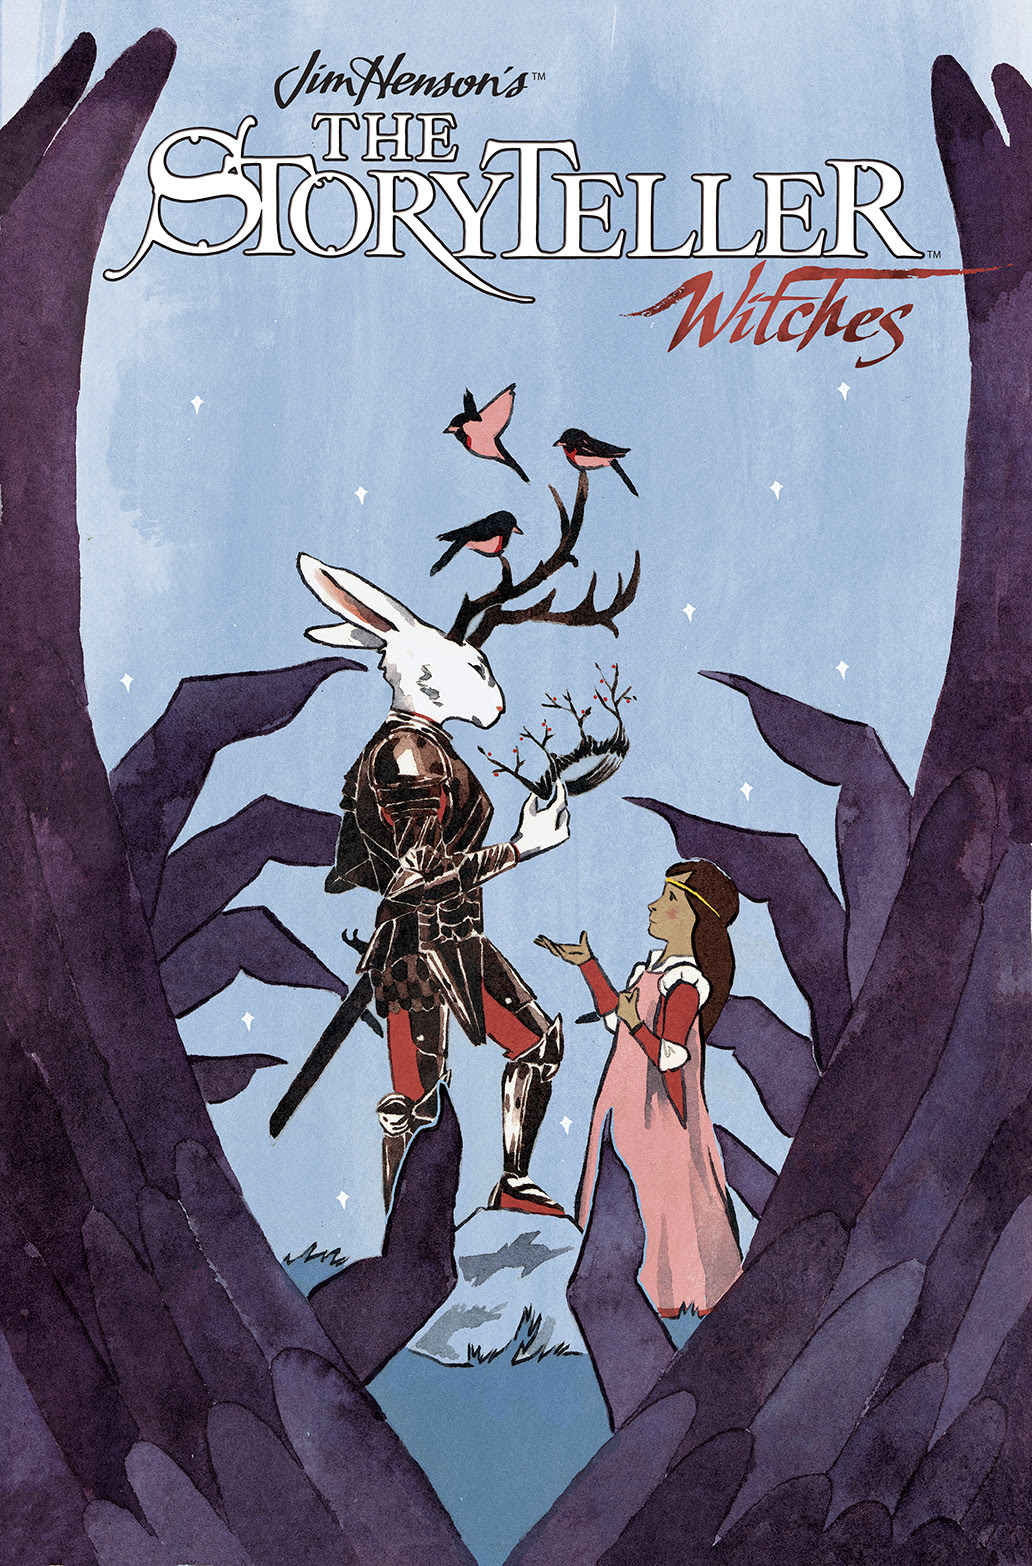 JIM HENSON'S THE STORYTELLER: WITCHES #1 Cover A by S. M. Vidaurri